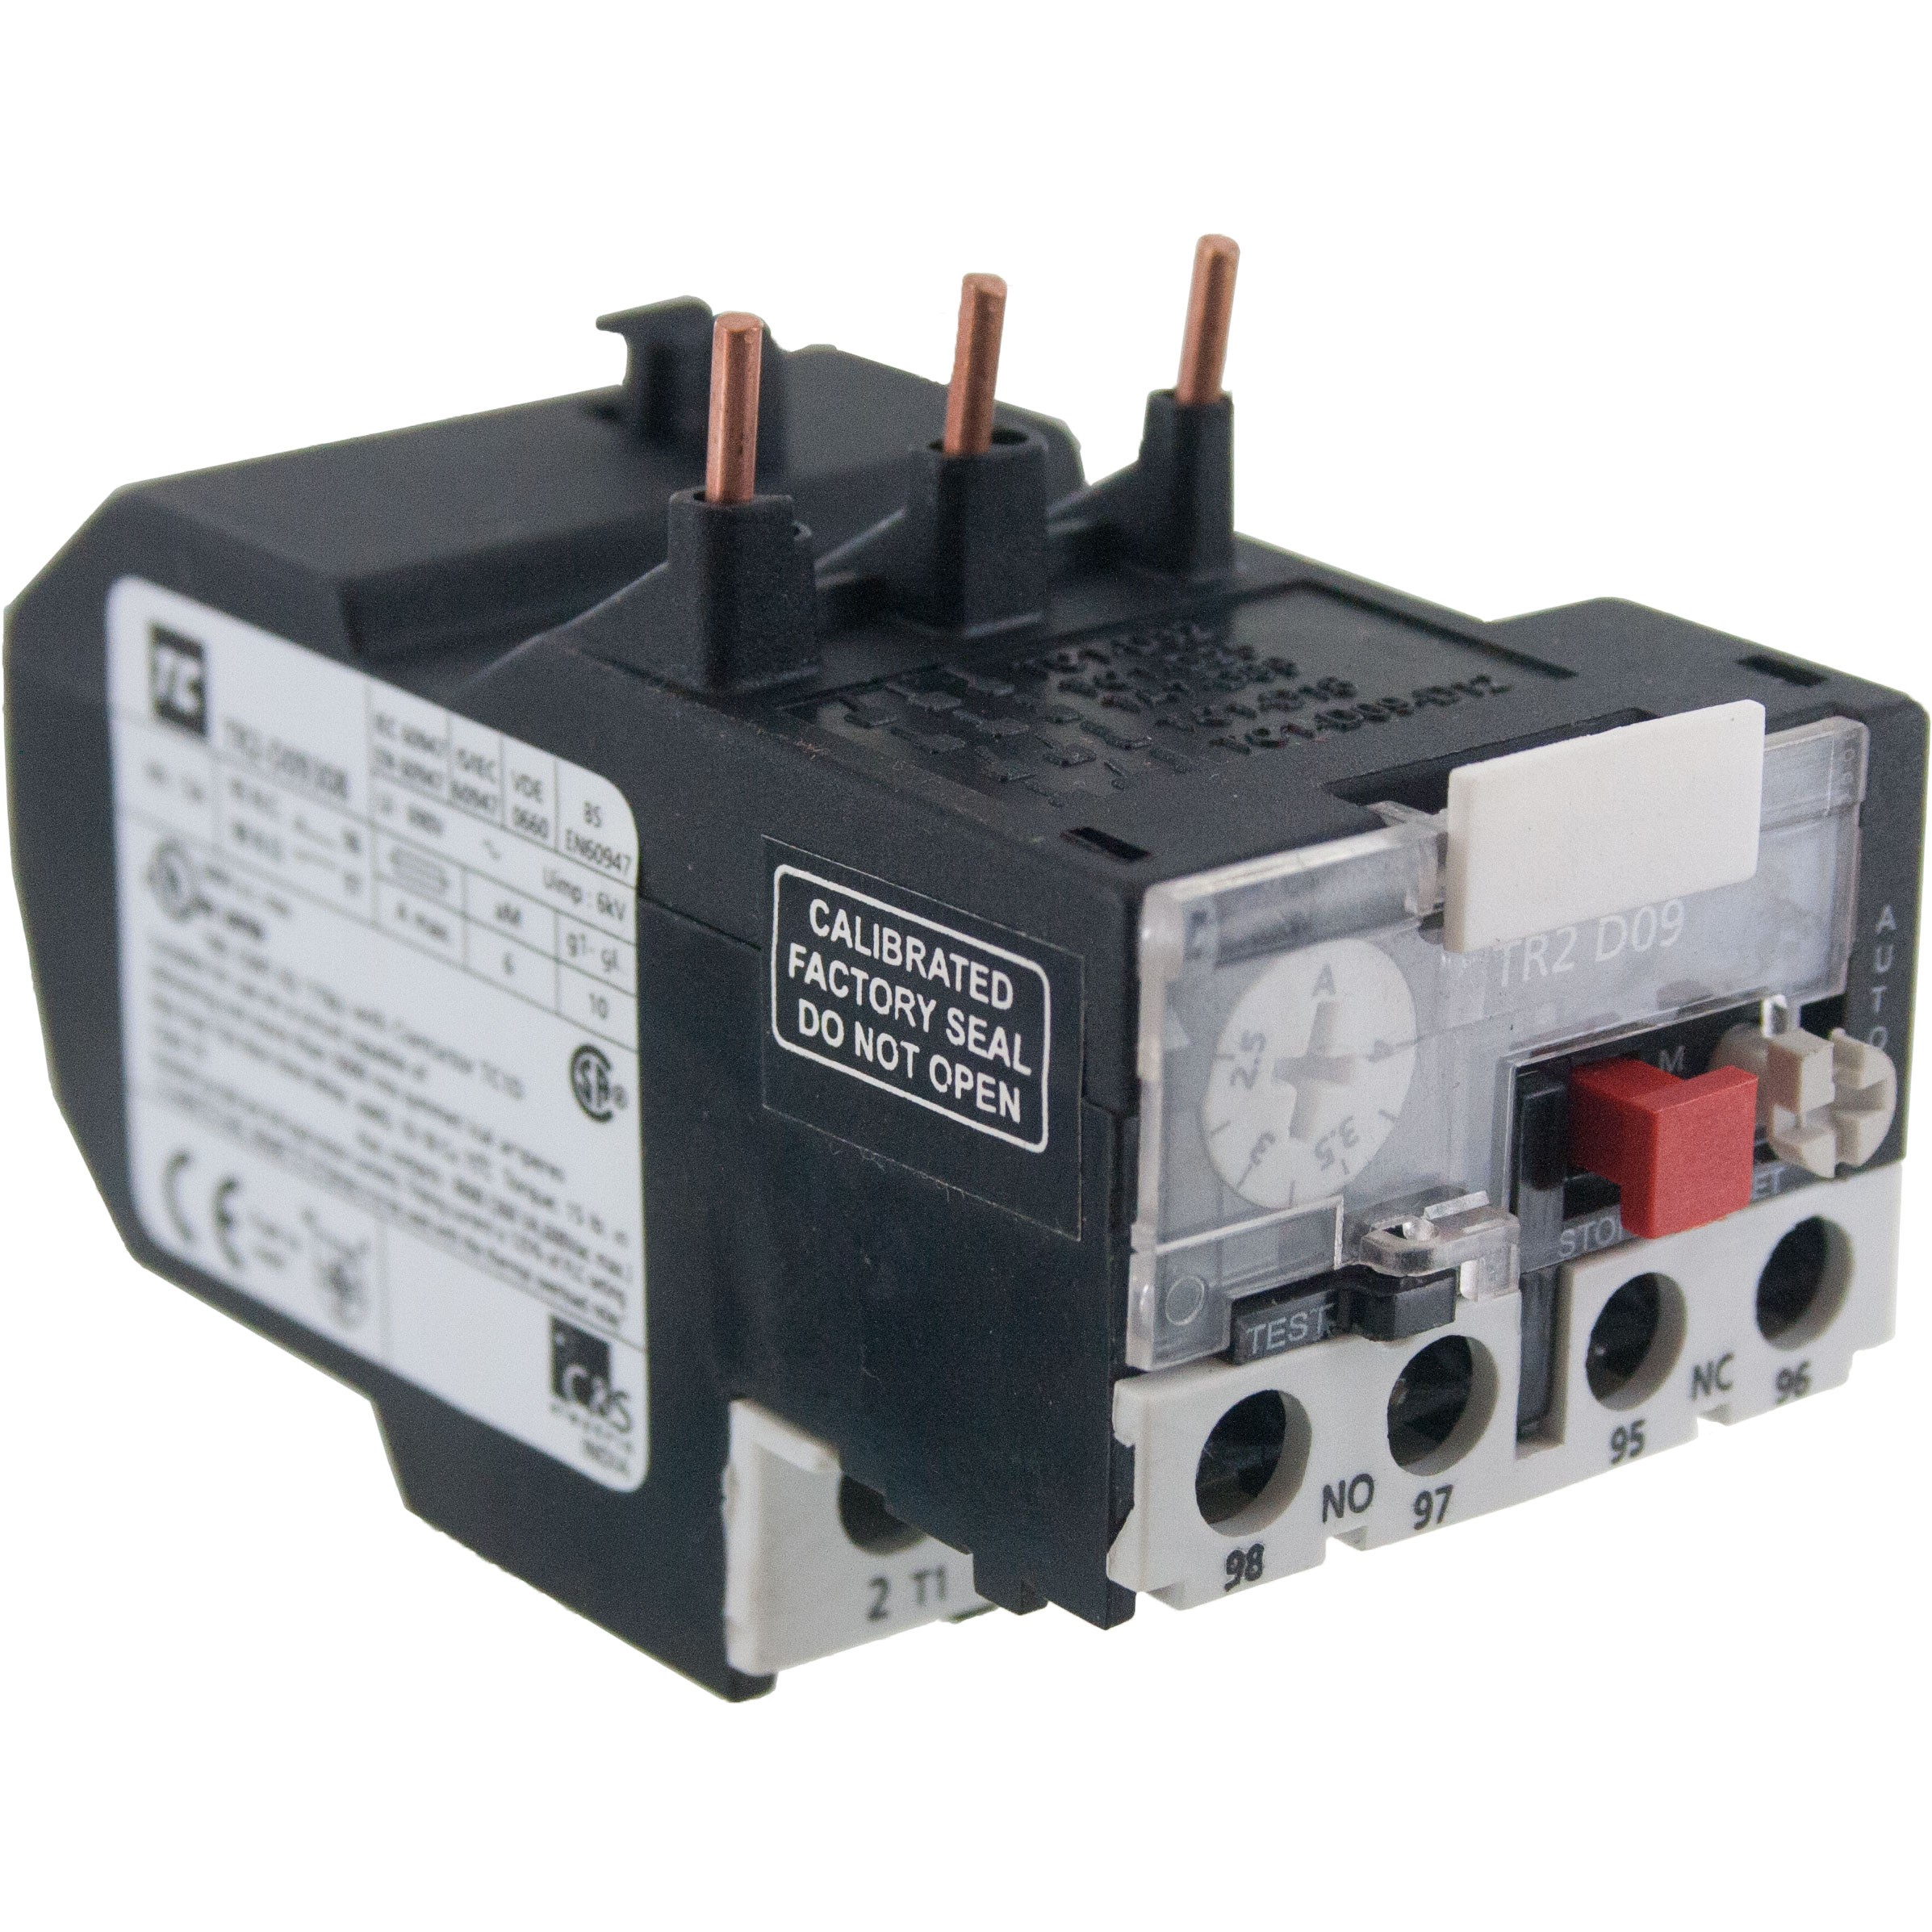 Thermal Overload Relay for Contactor 7-10 Amp Setting